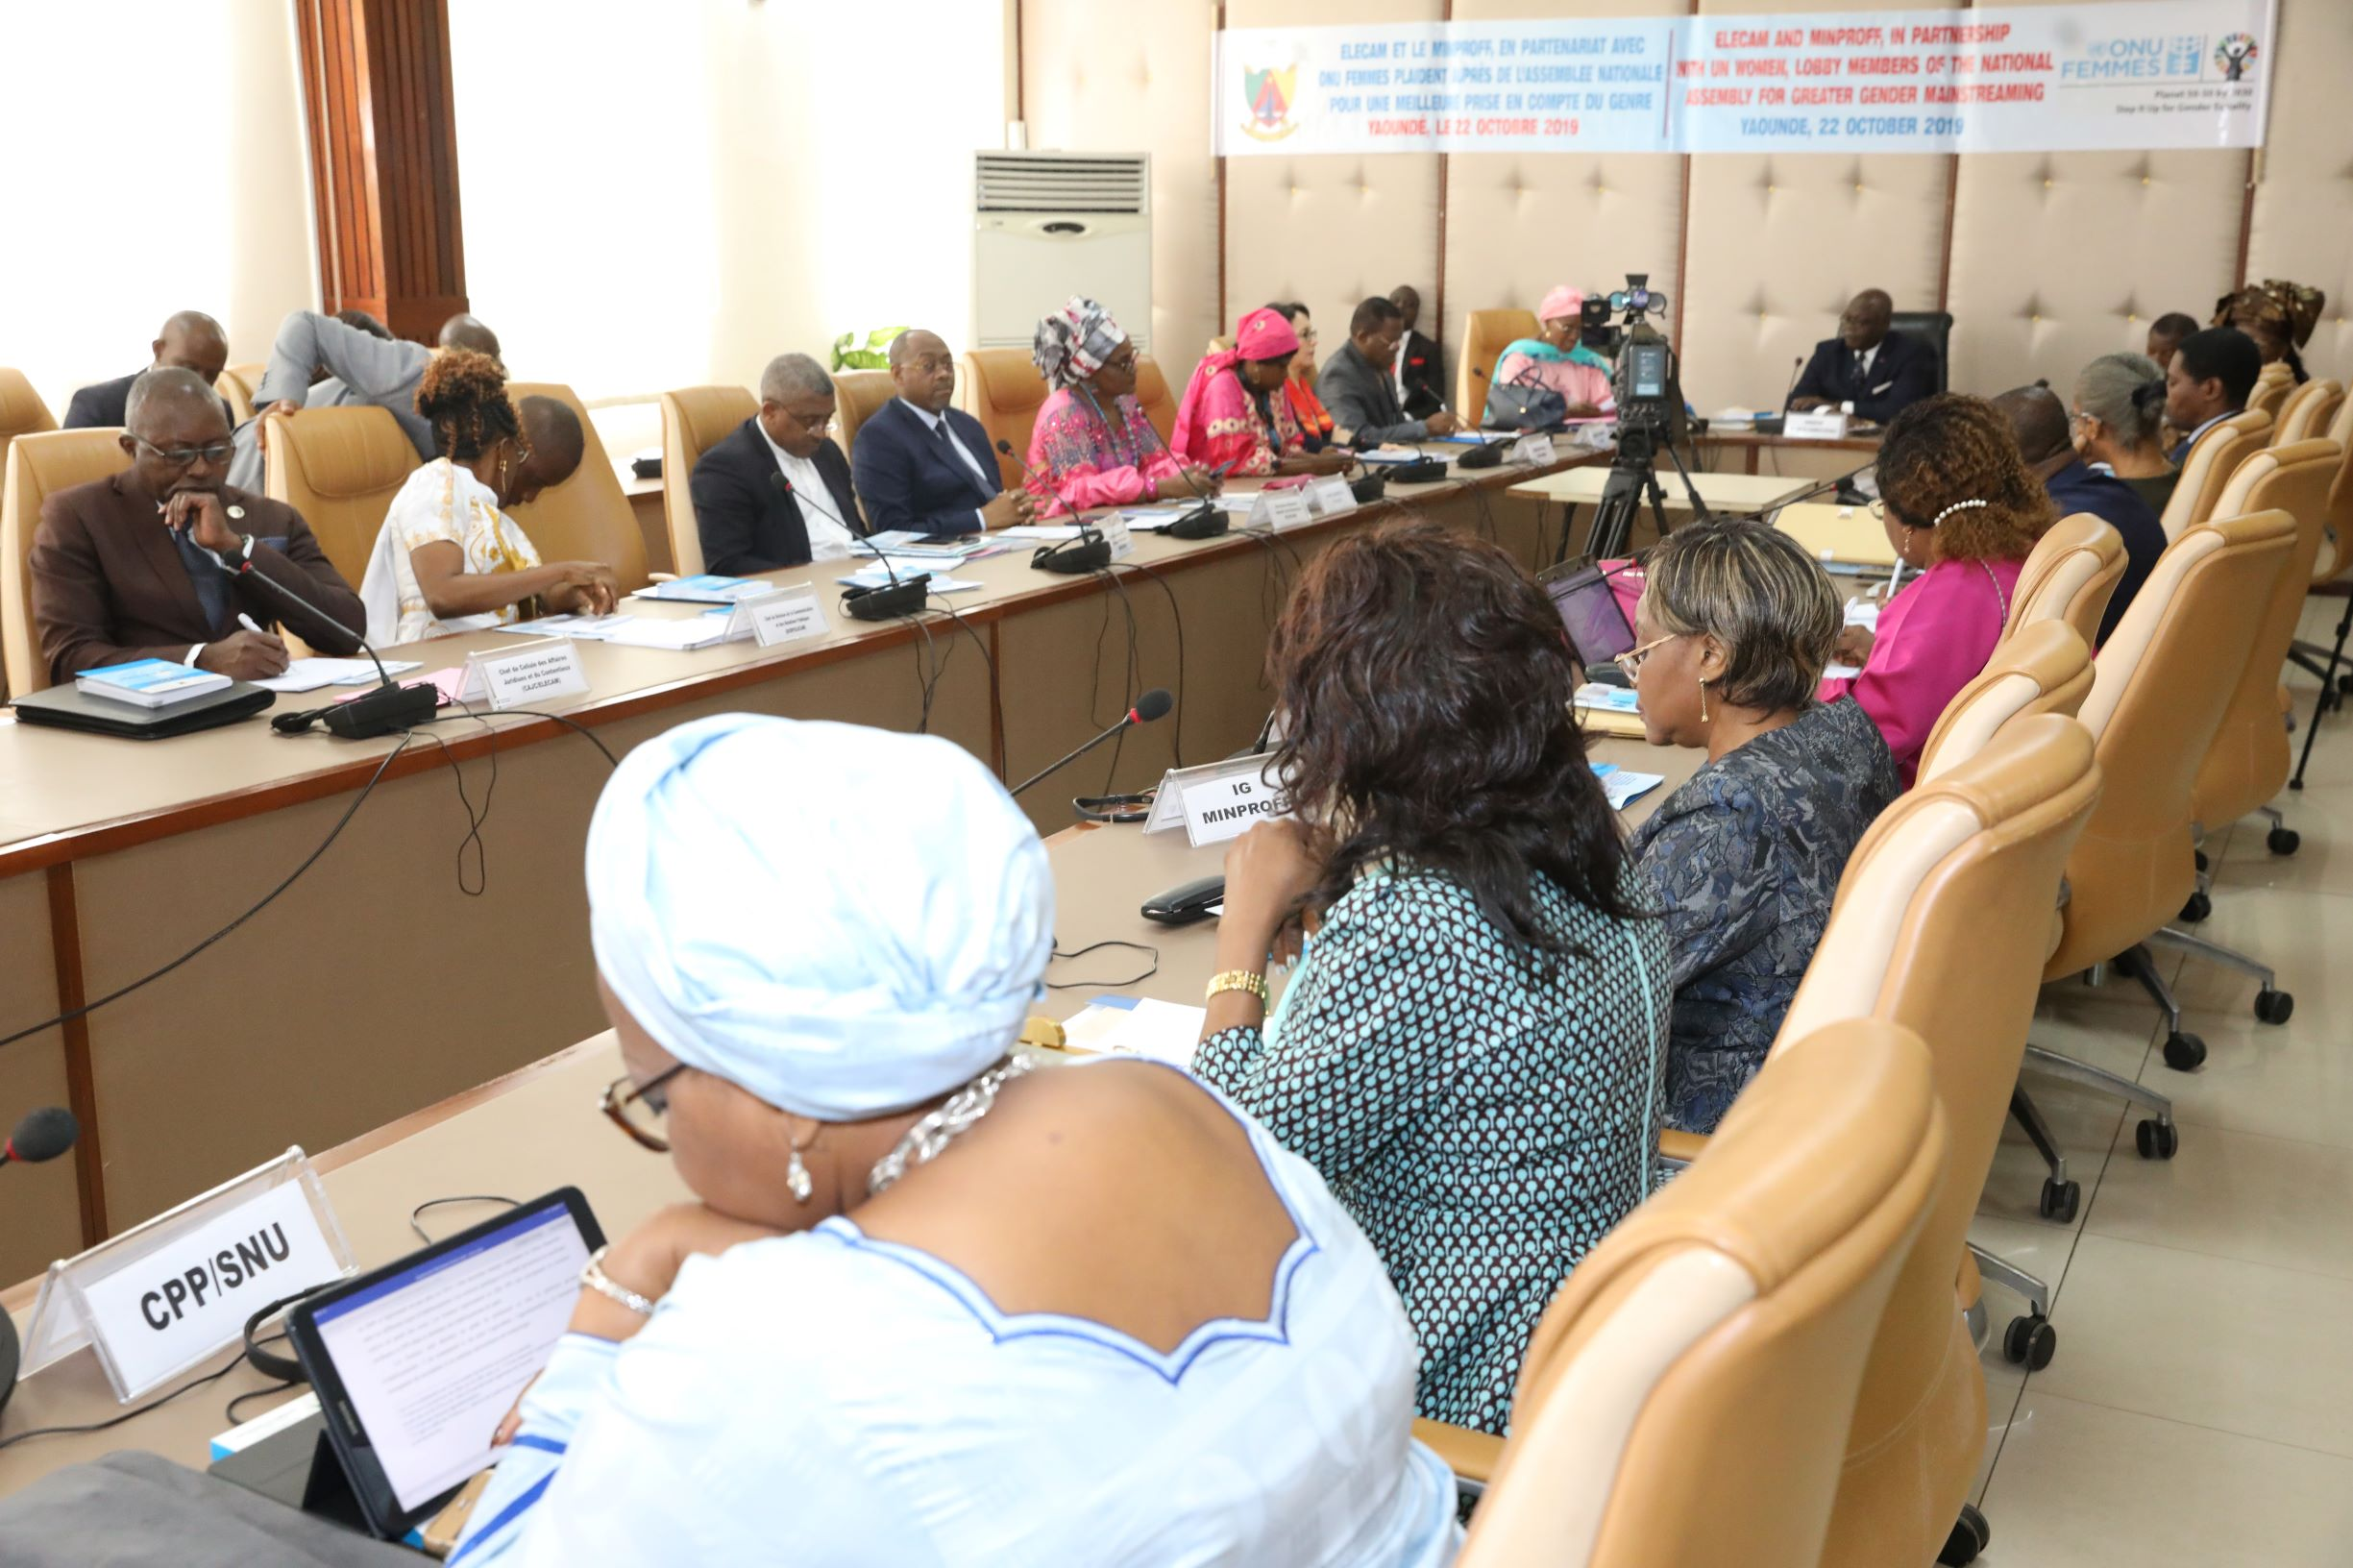 A cross section of participants attending the advocacy meeting. Photo credit: ELECAM